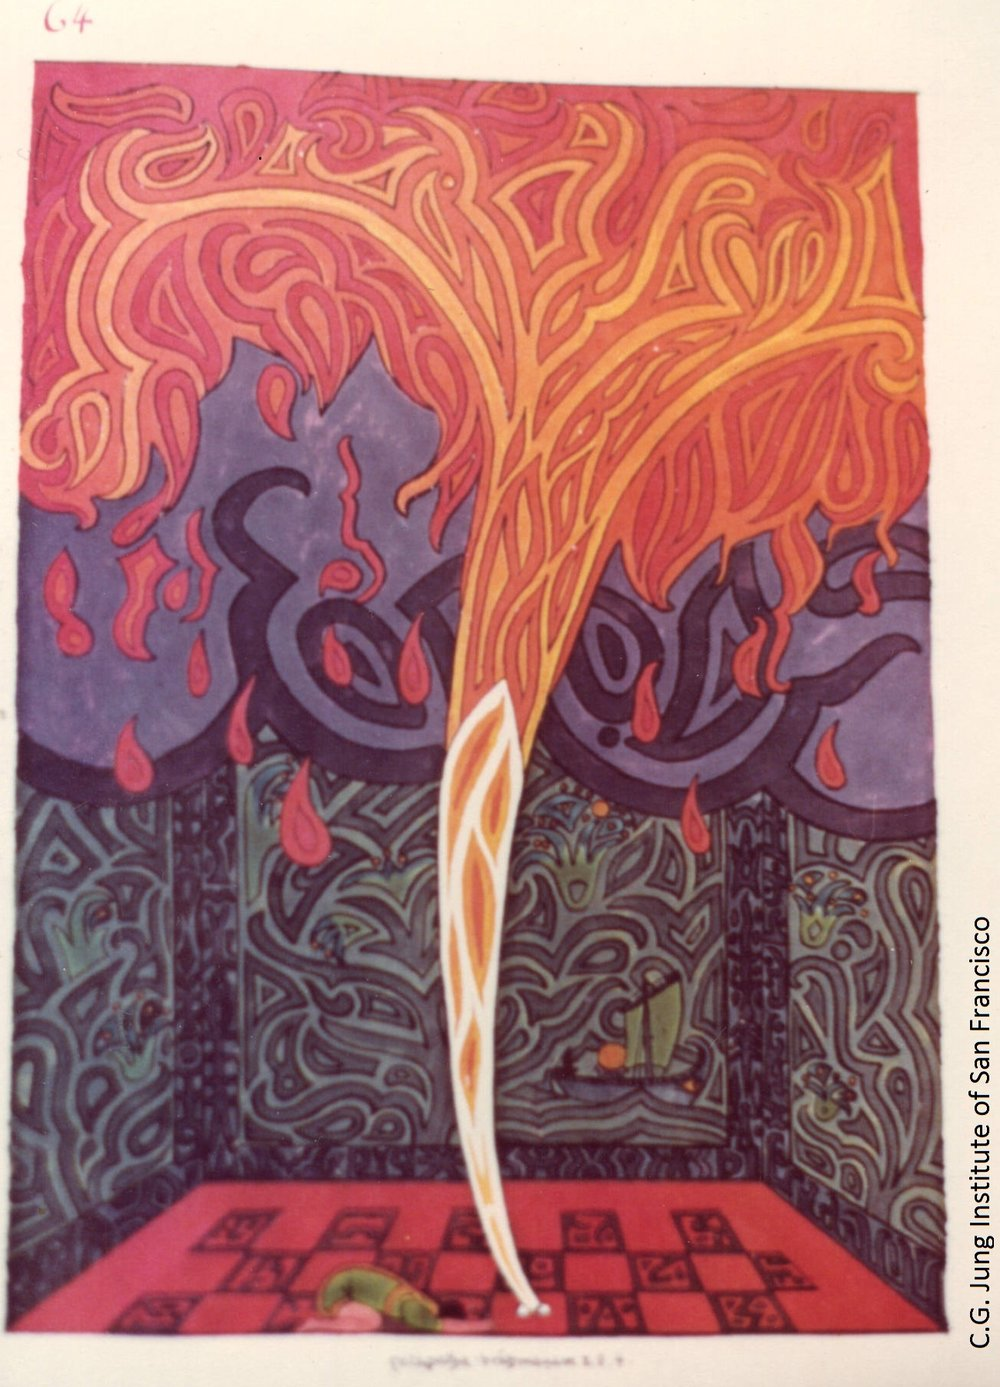 Image from Jung's Red Book